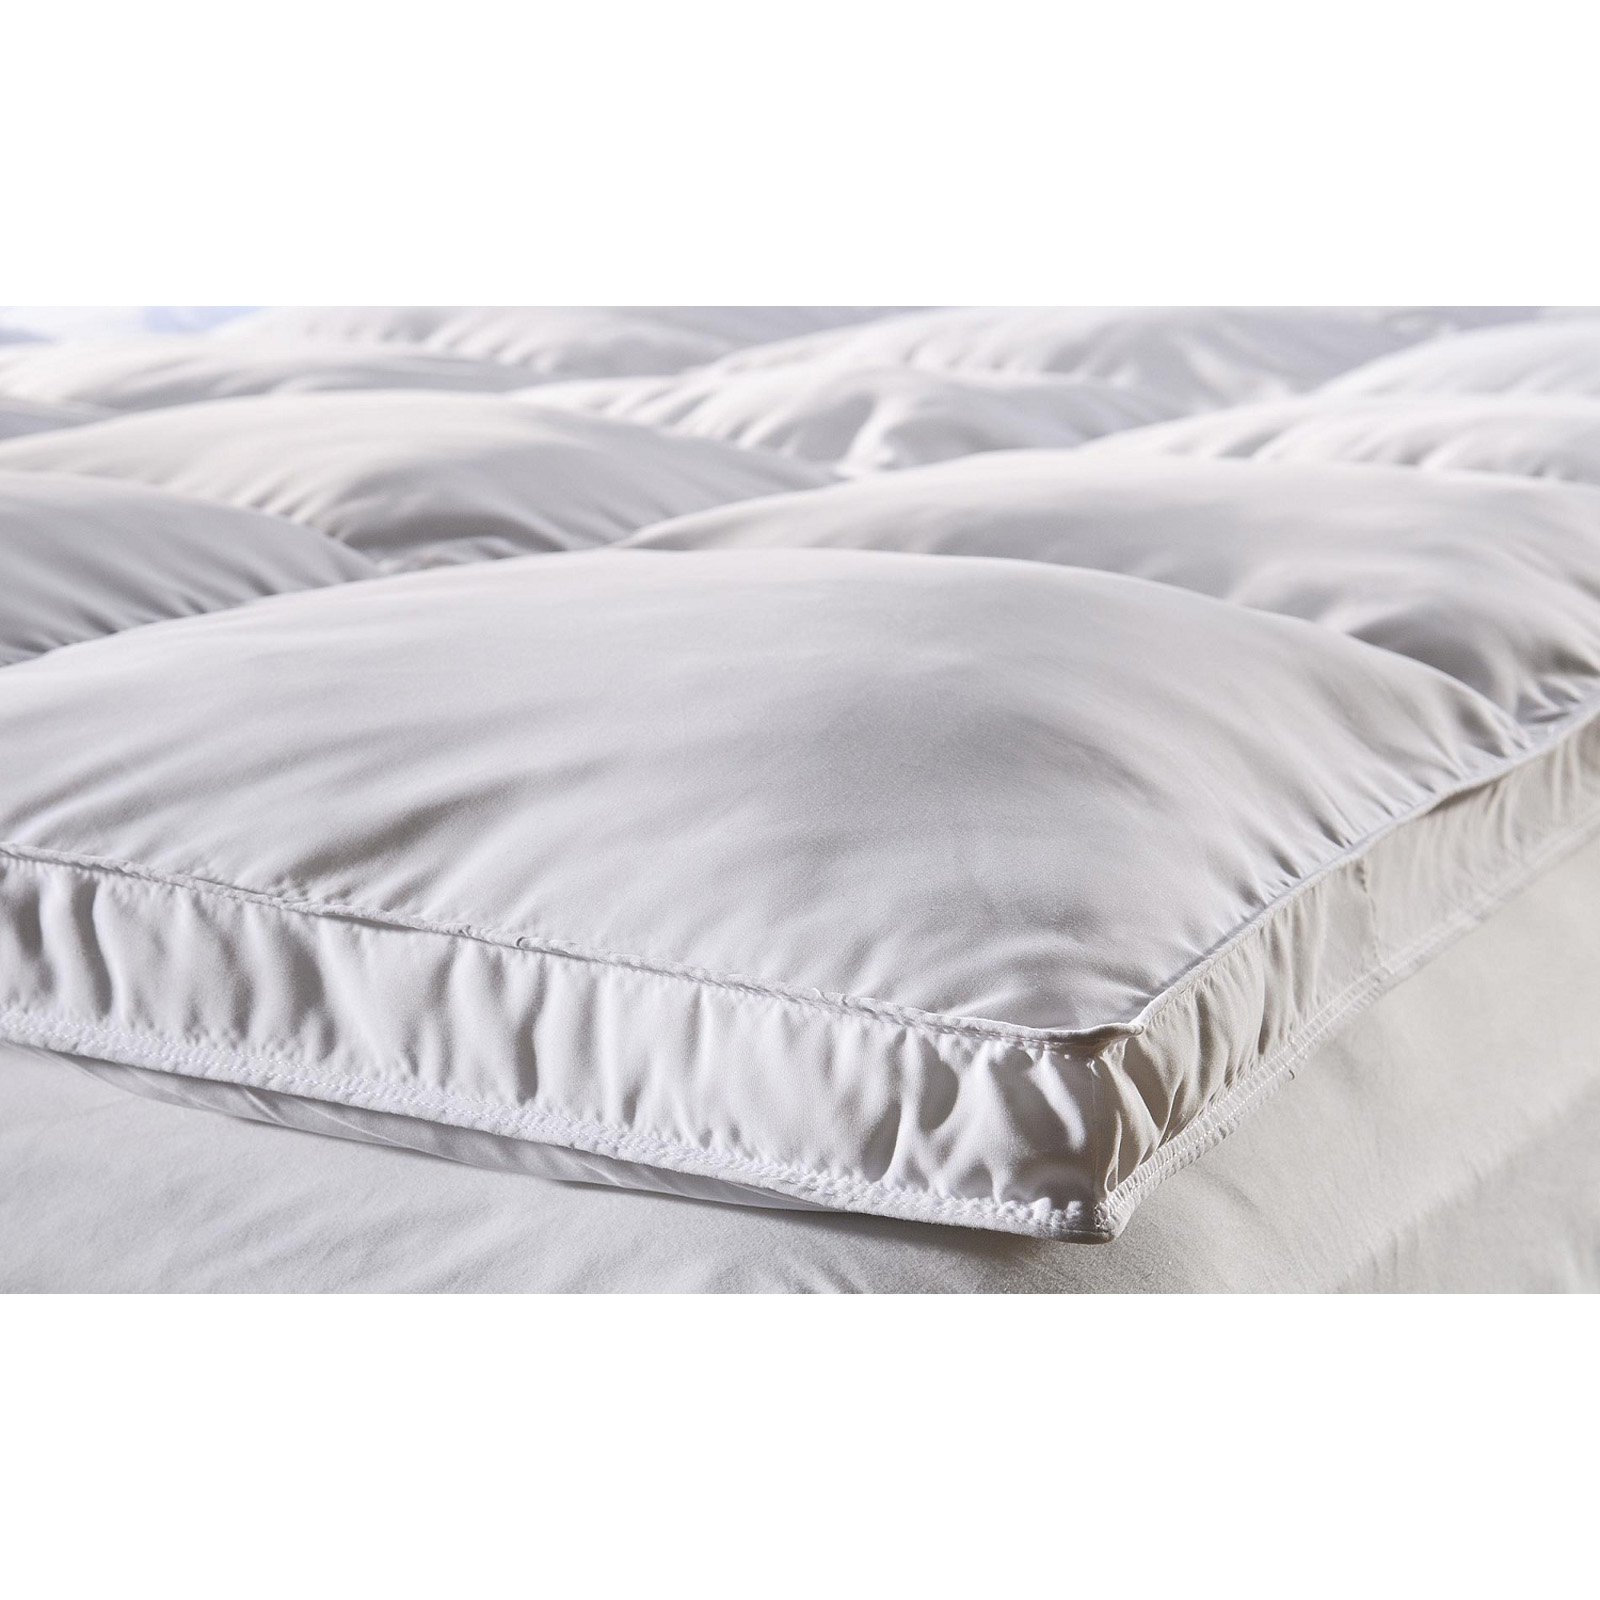 Double Bed Mattress Cover Superior Microfiber All Season Down Alternative Mattress Topper White